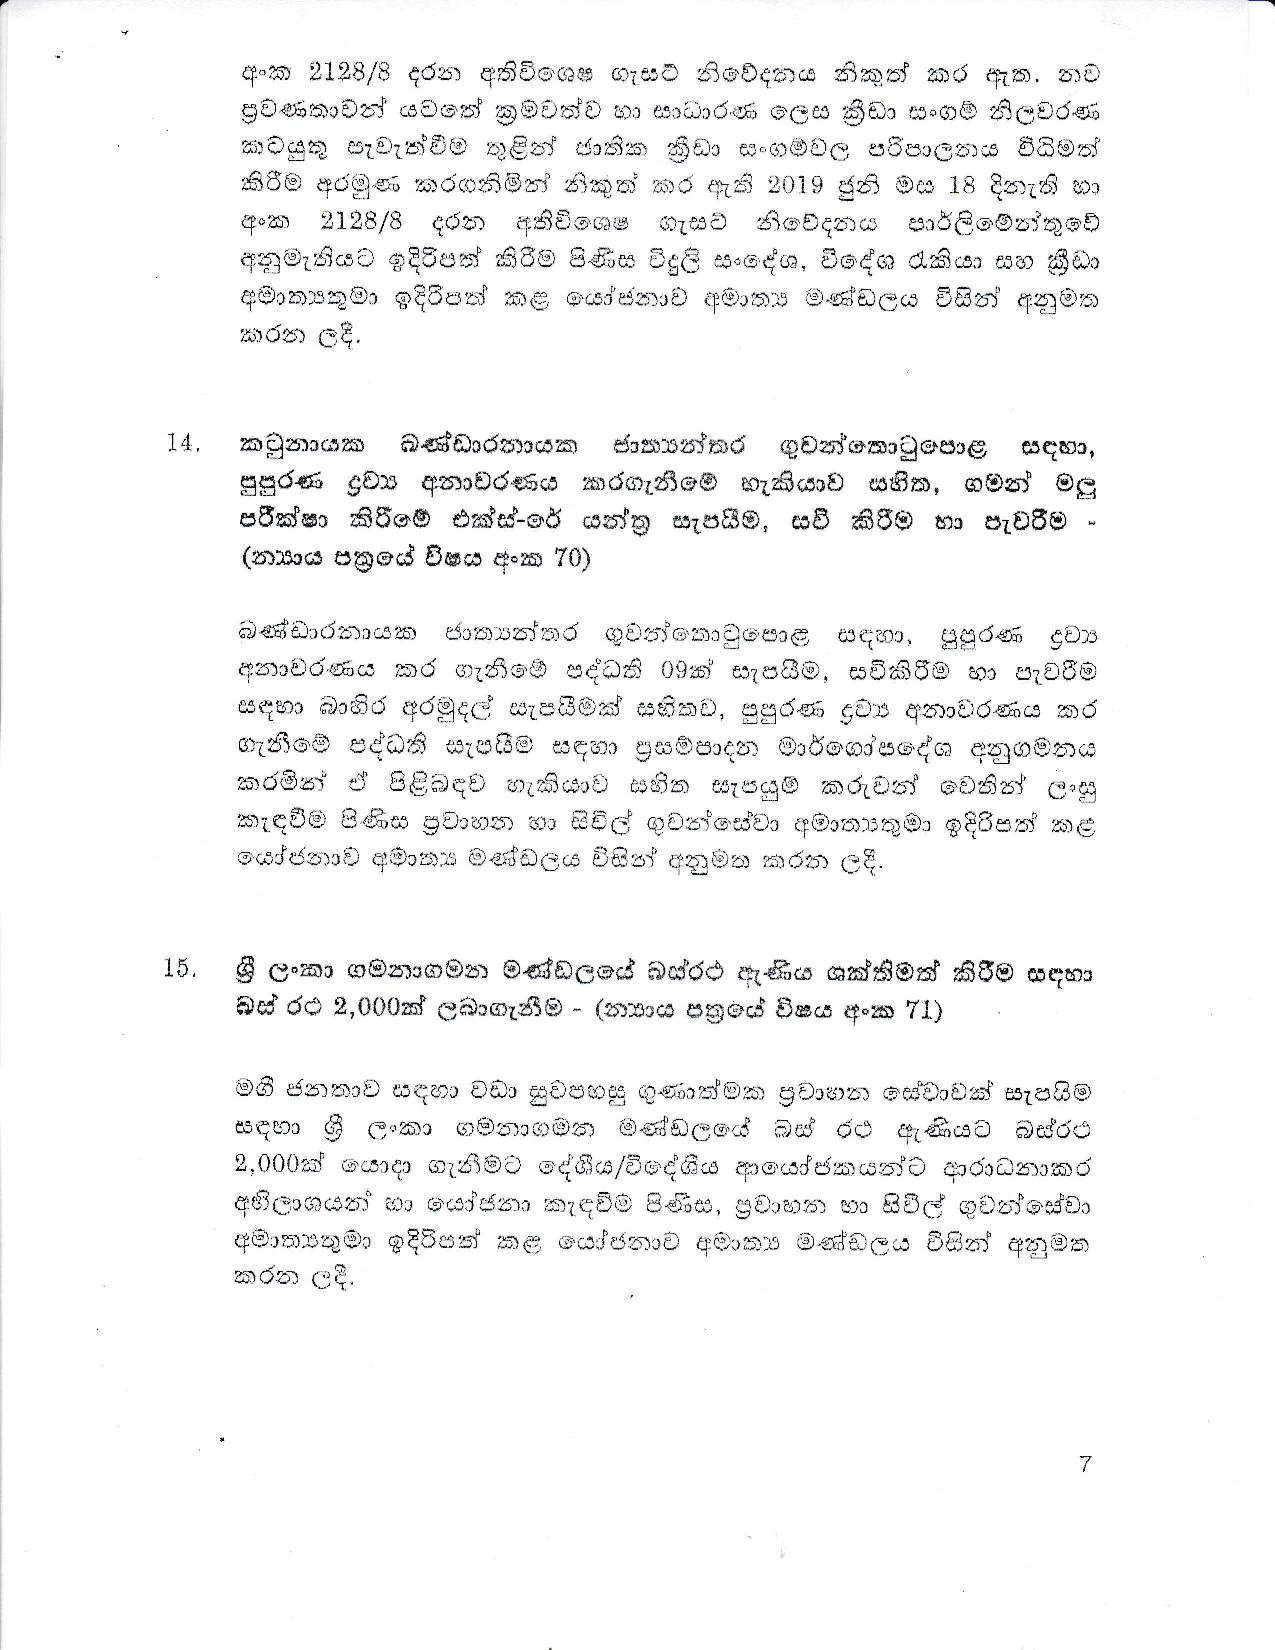 Cabinet Decision on 20.08.2019 1 page 007